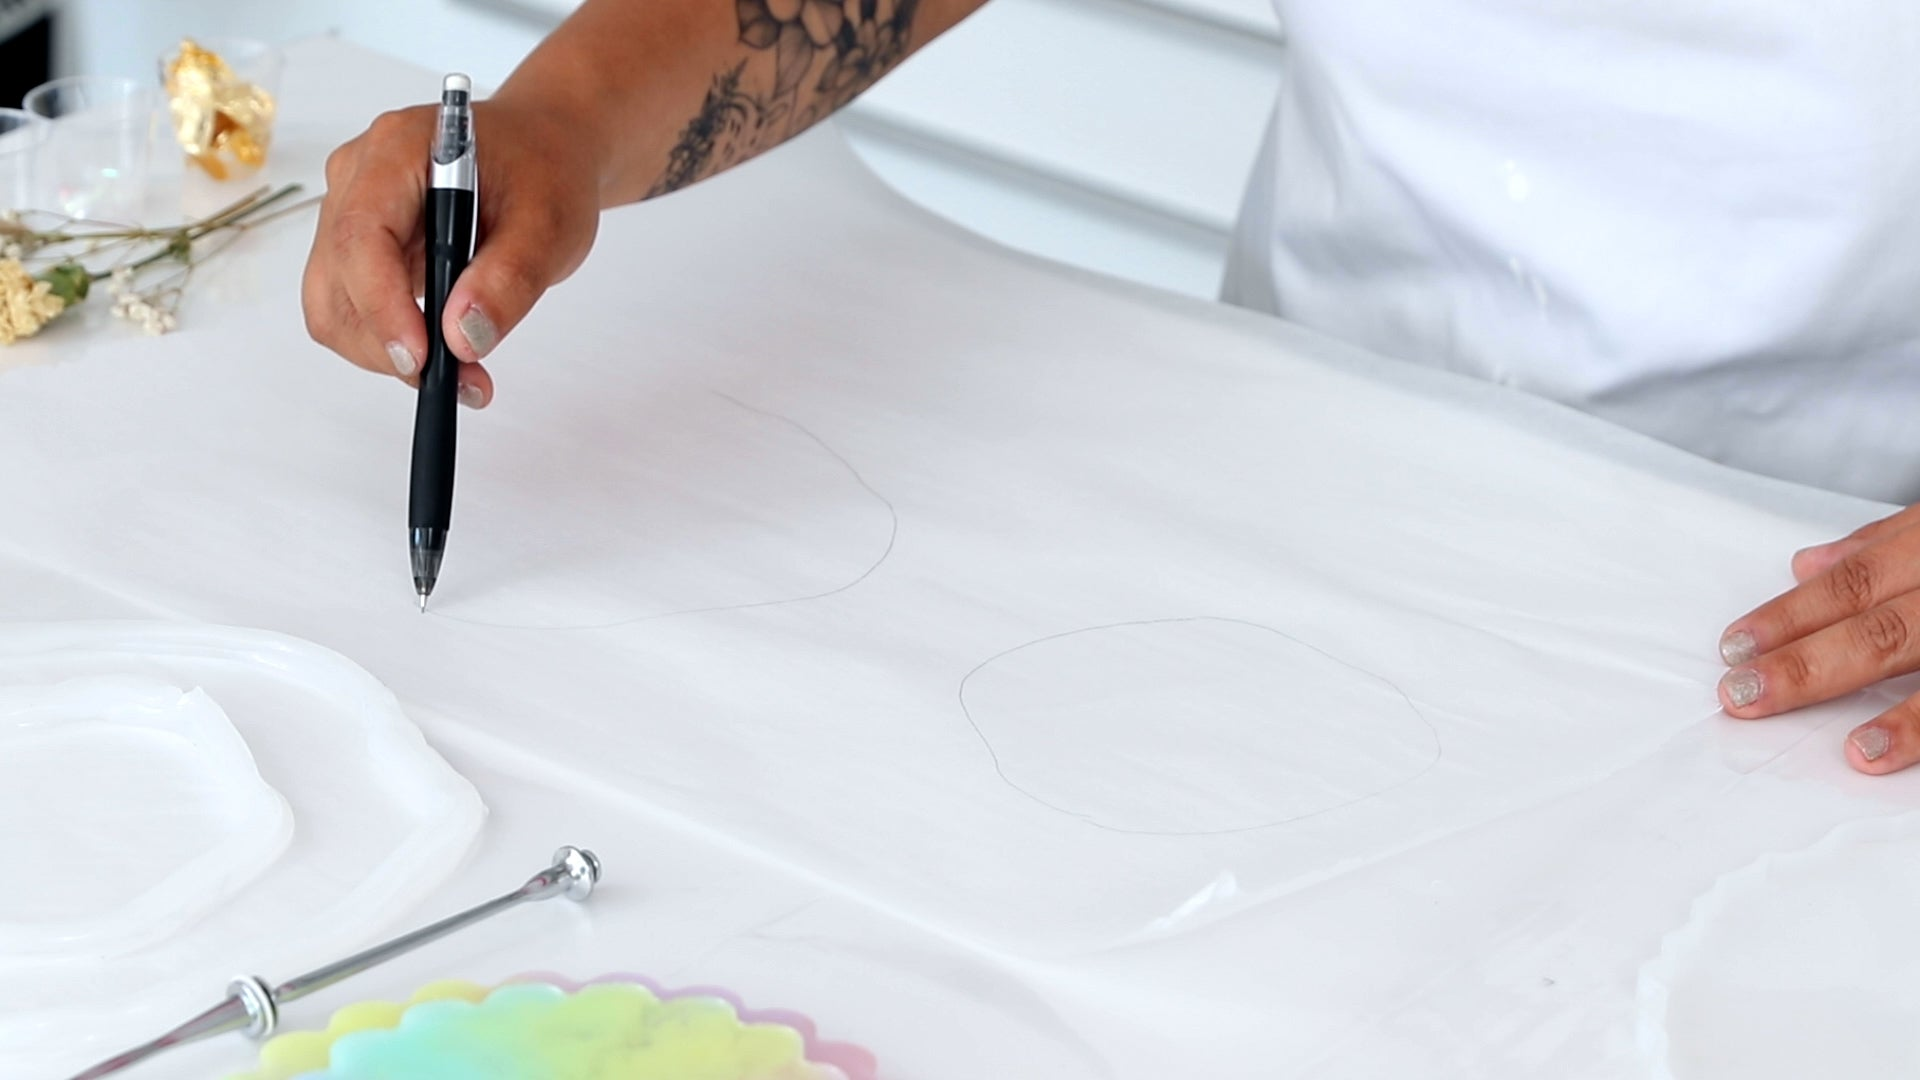 build a custom mold silicone caulking trace onto parchment paper